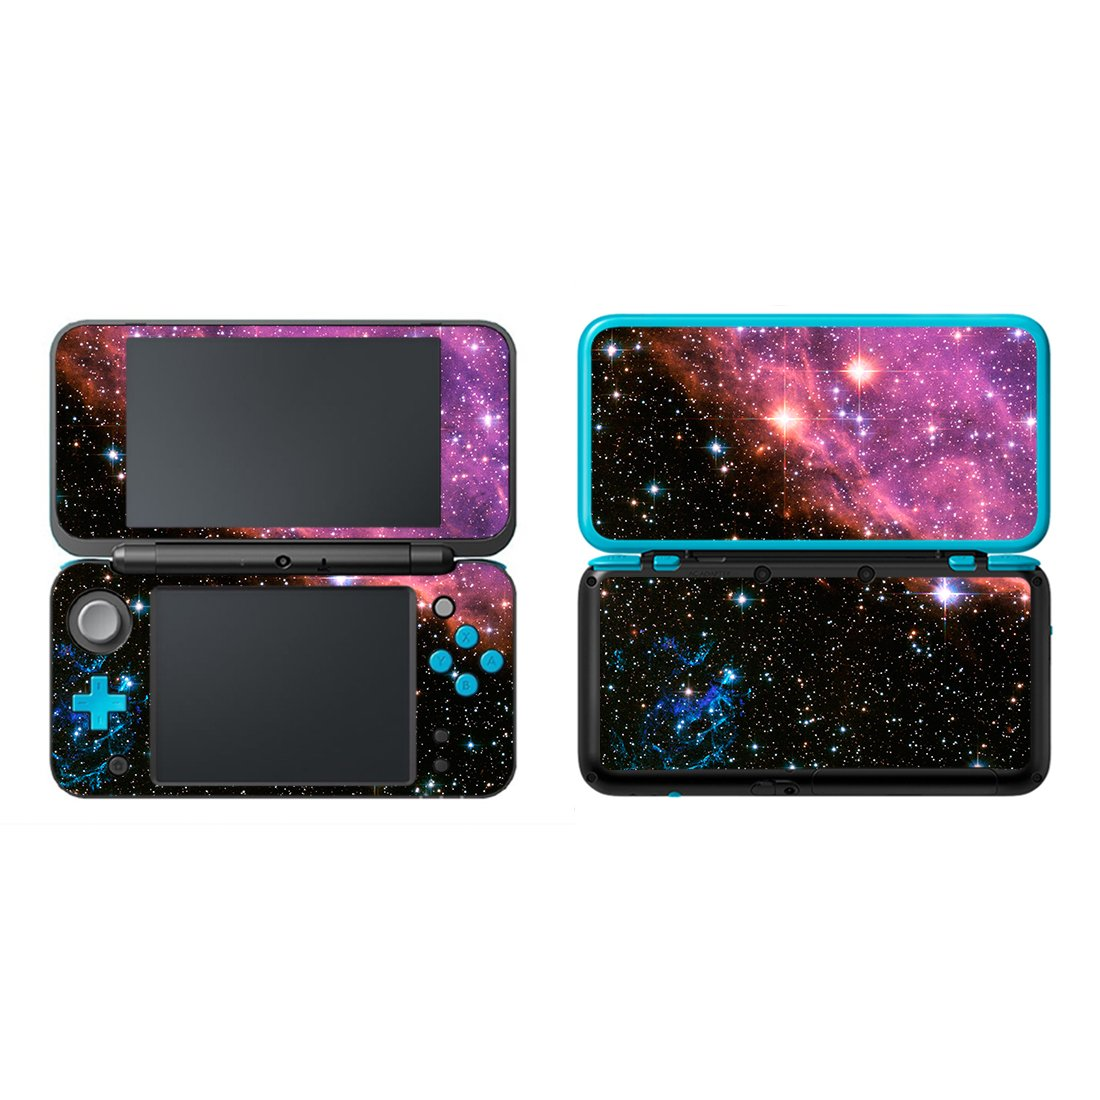 FOTTCZ Vinyl Cover Decals Skin Sticker for New Nintendo 2DS XL/LL - Purple Nebular